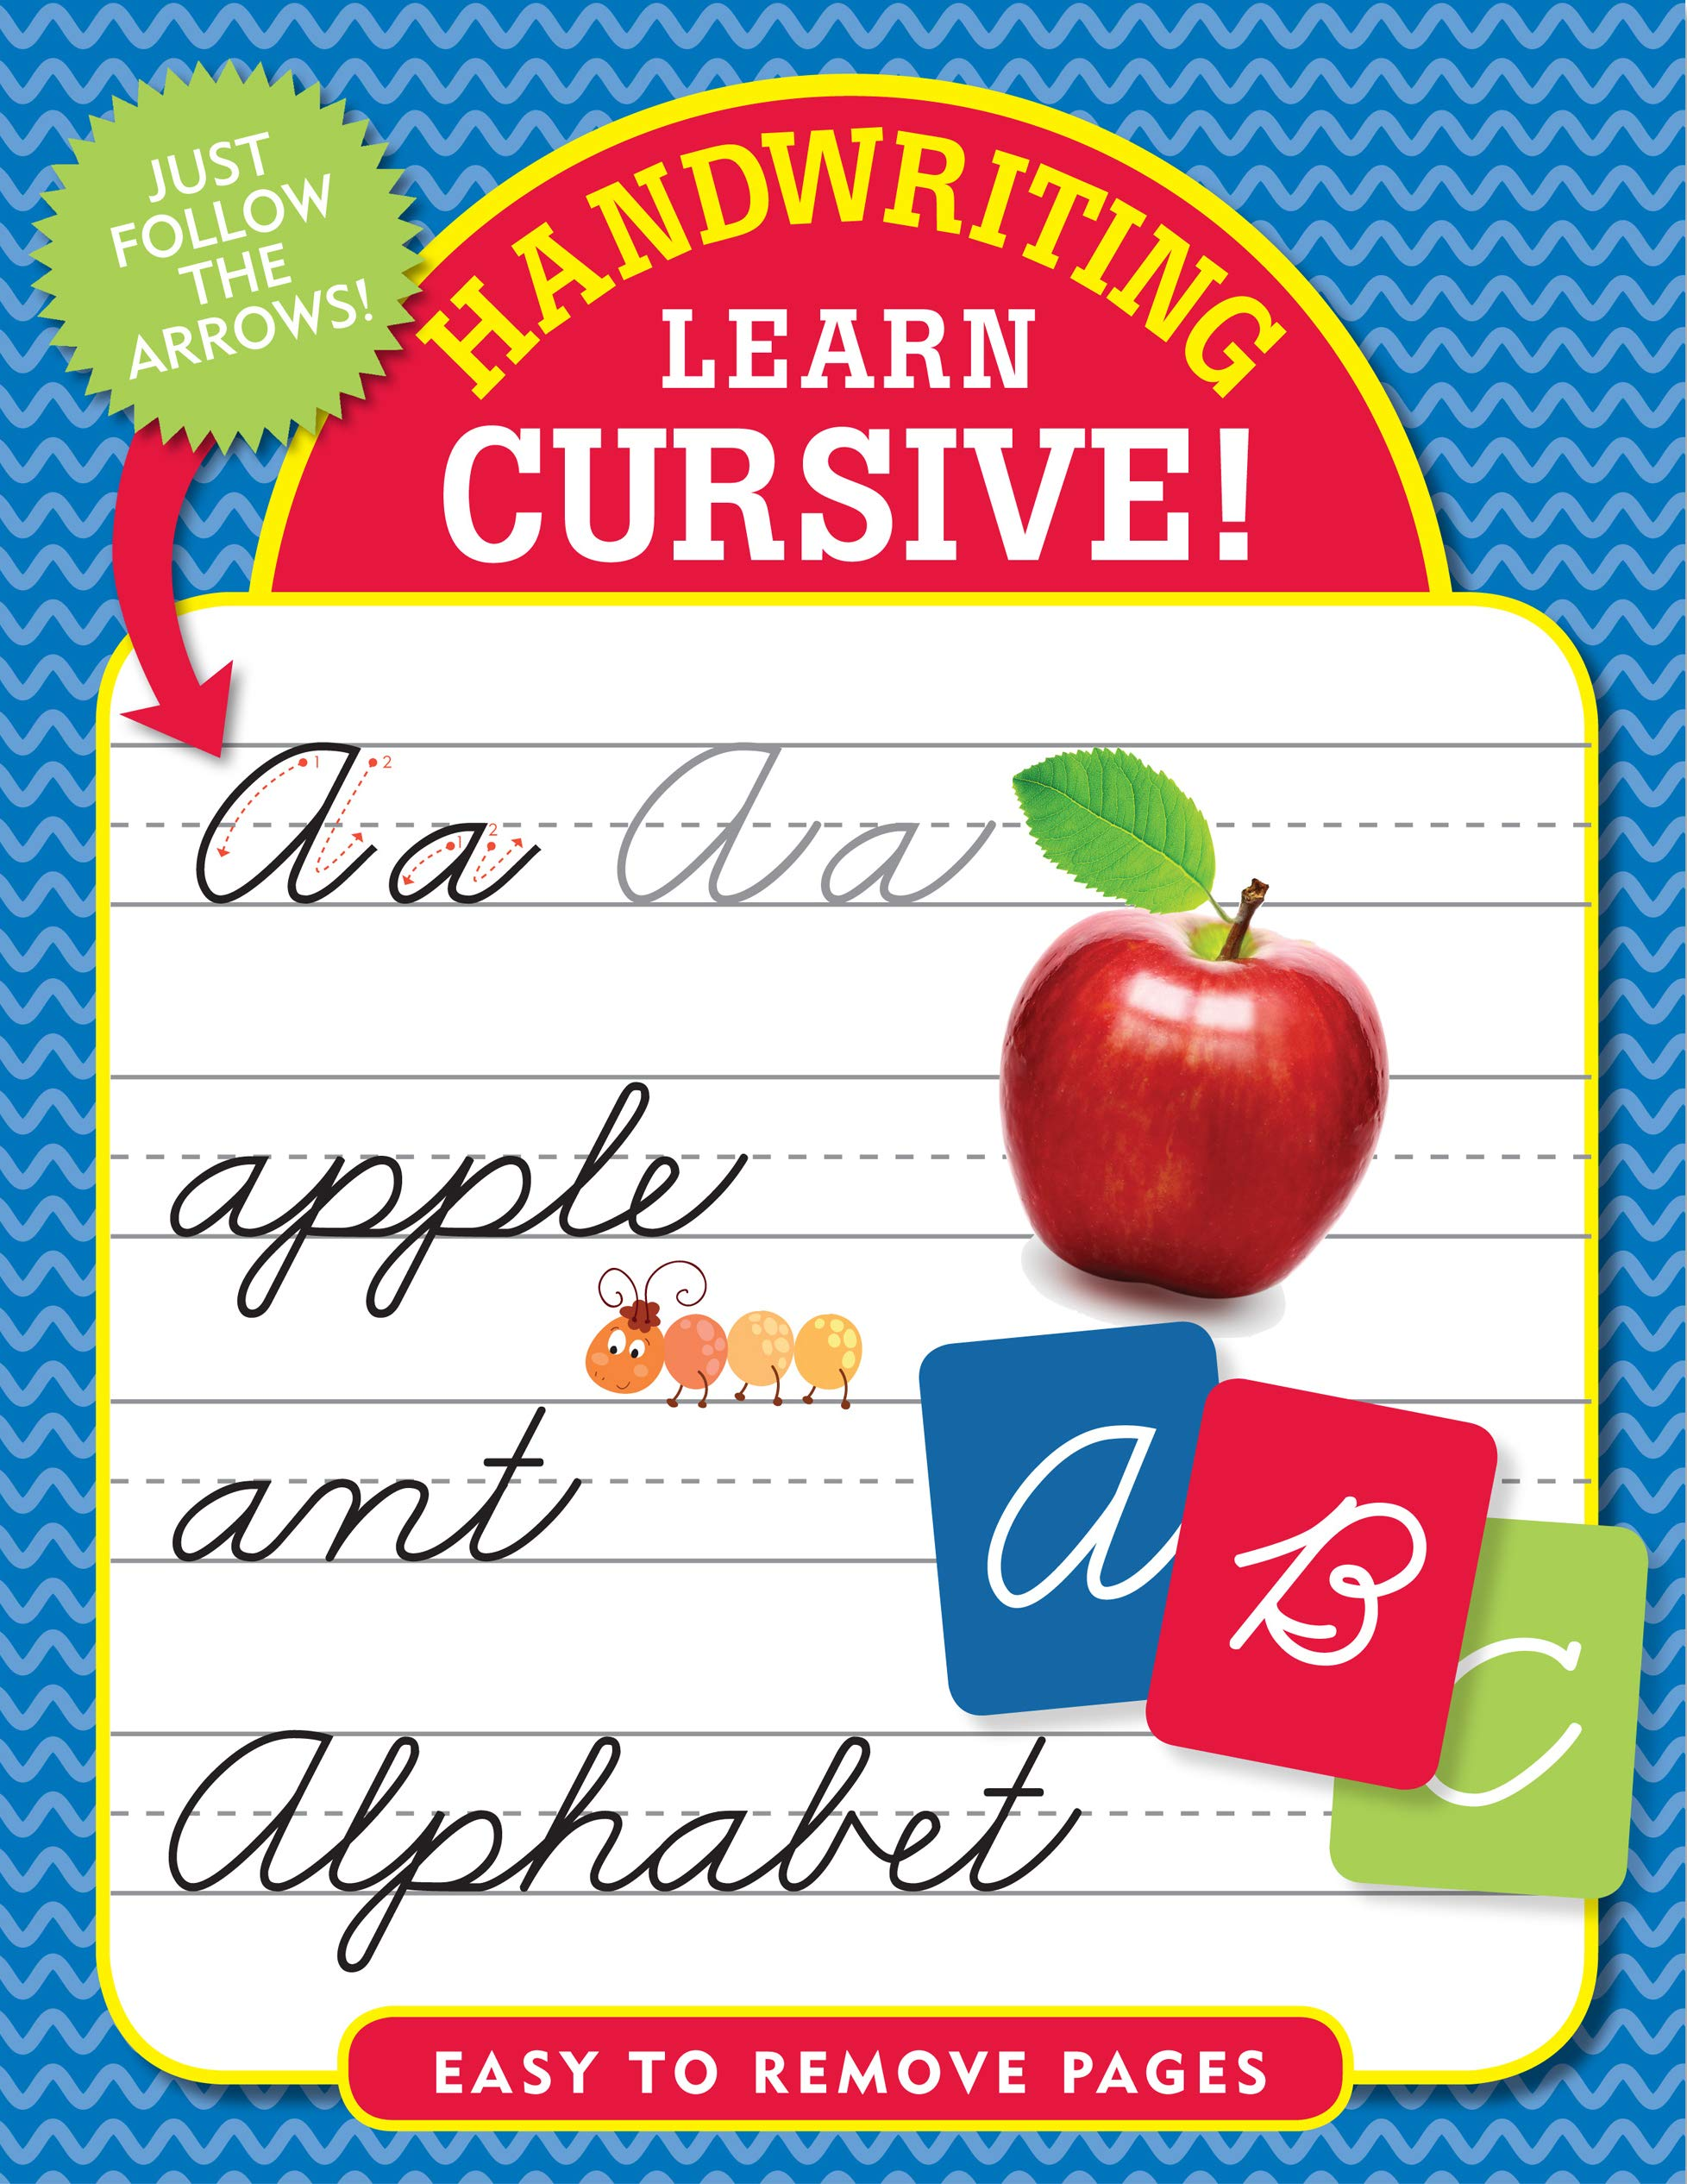 Handwriting Learn Cursive Letter Tracing Practice Peter